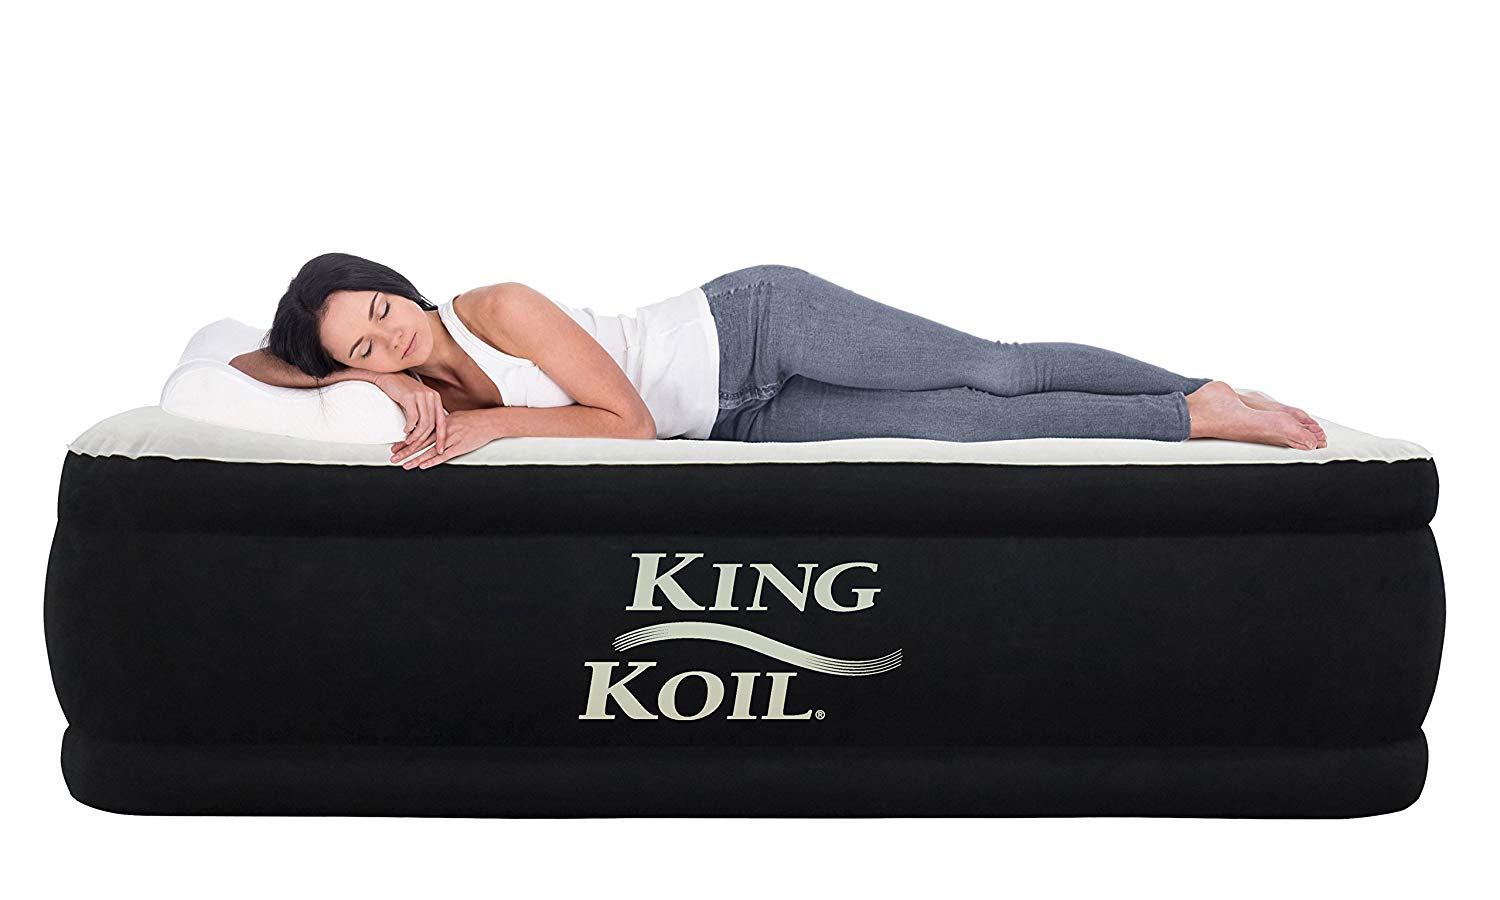 best air mattresses to use at home 1 Top 6 Best Rated Air Mattress 2021 - Home Air Mattresses Reviews